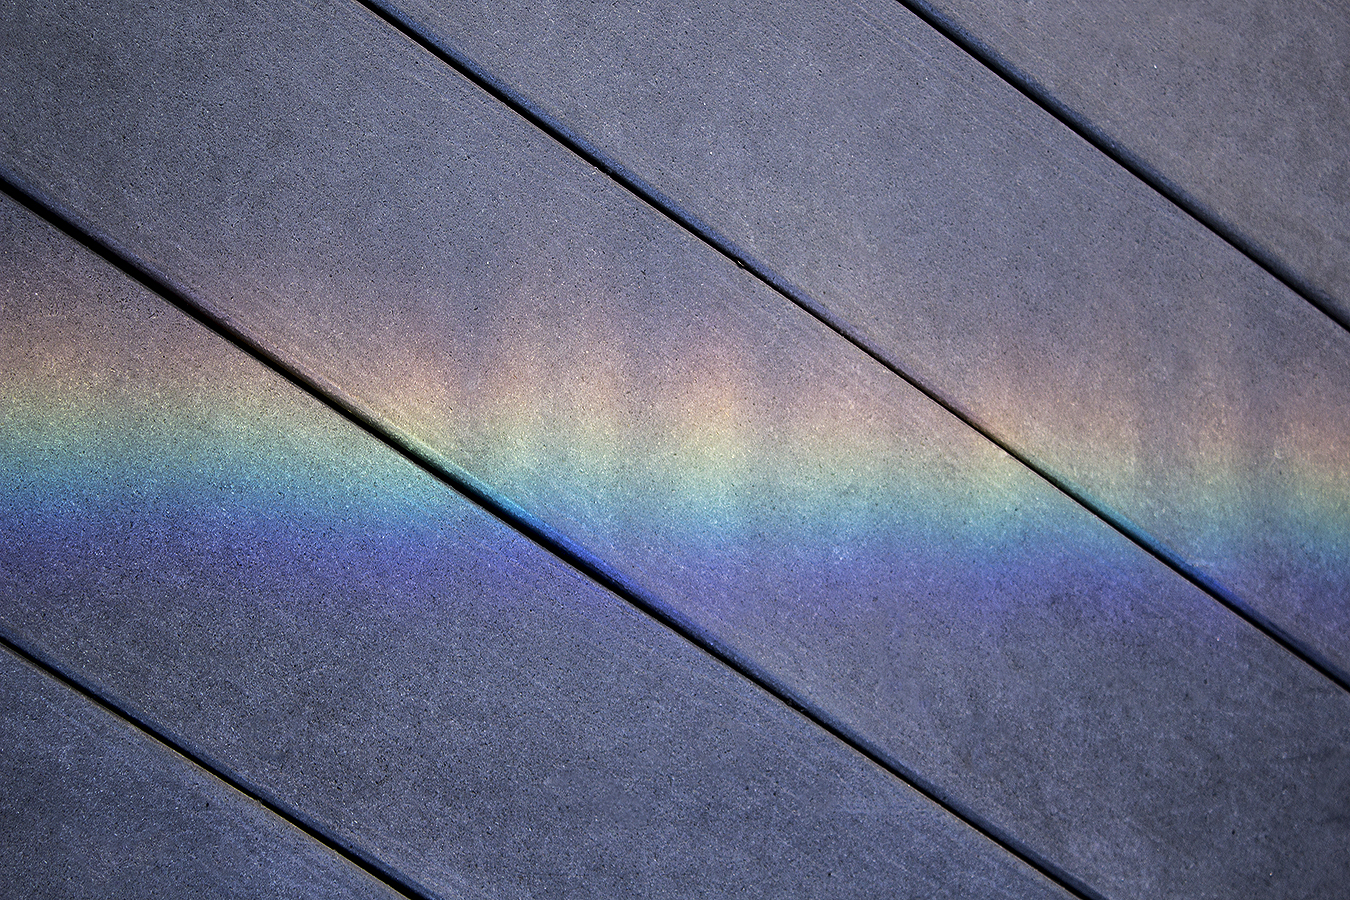 Janelle_Tong_Photography_Tony_Ward_Studio_Individual_Project_UPenn_Penn_Park_Bridges_Skyline_Bridge_Rainbow_Reflection_Light